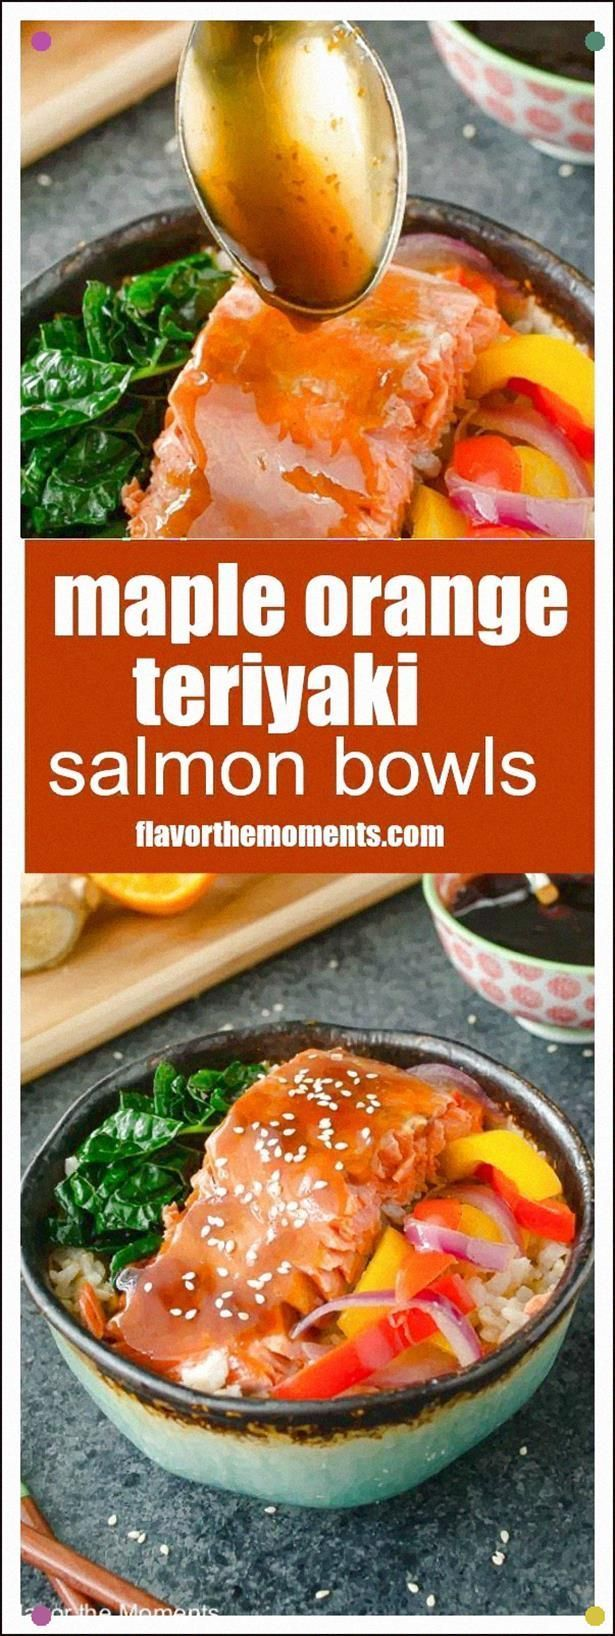 Maple Orange Teriyaki Salmon Bowls Are Salmon Filets Smothered In A Sticky Sweet Teriyaki Sauce With No Refined Sugar Its So Delicious You May Never Want Takeout Again. #teriyakisalmon Maple Orange Teriyaki Salmon Bowls Are Salmon Filets Smothered In A Sticky Sweet Teriyaki Sauce With No Refined Sugar Its So Delicious You May Never Want Takeout Again. #salmonteriyaki Maple Orange Teriyaki Salmon Bowls Are Salmon Filets Smothered In A Sticky Sweet Teriyaki Sauce With No Refined Sugar Its So Delic #teriyakisalmon